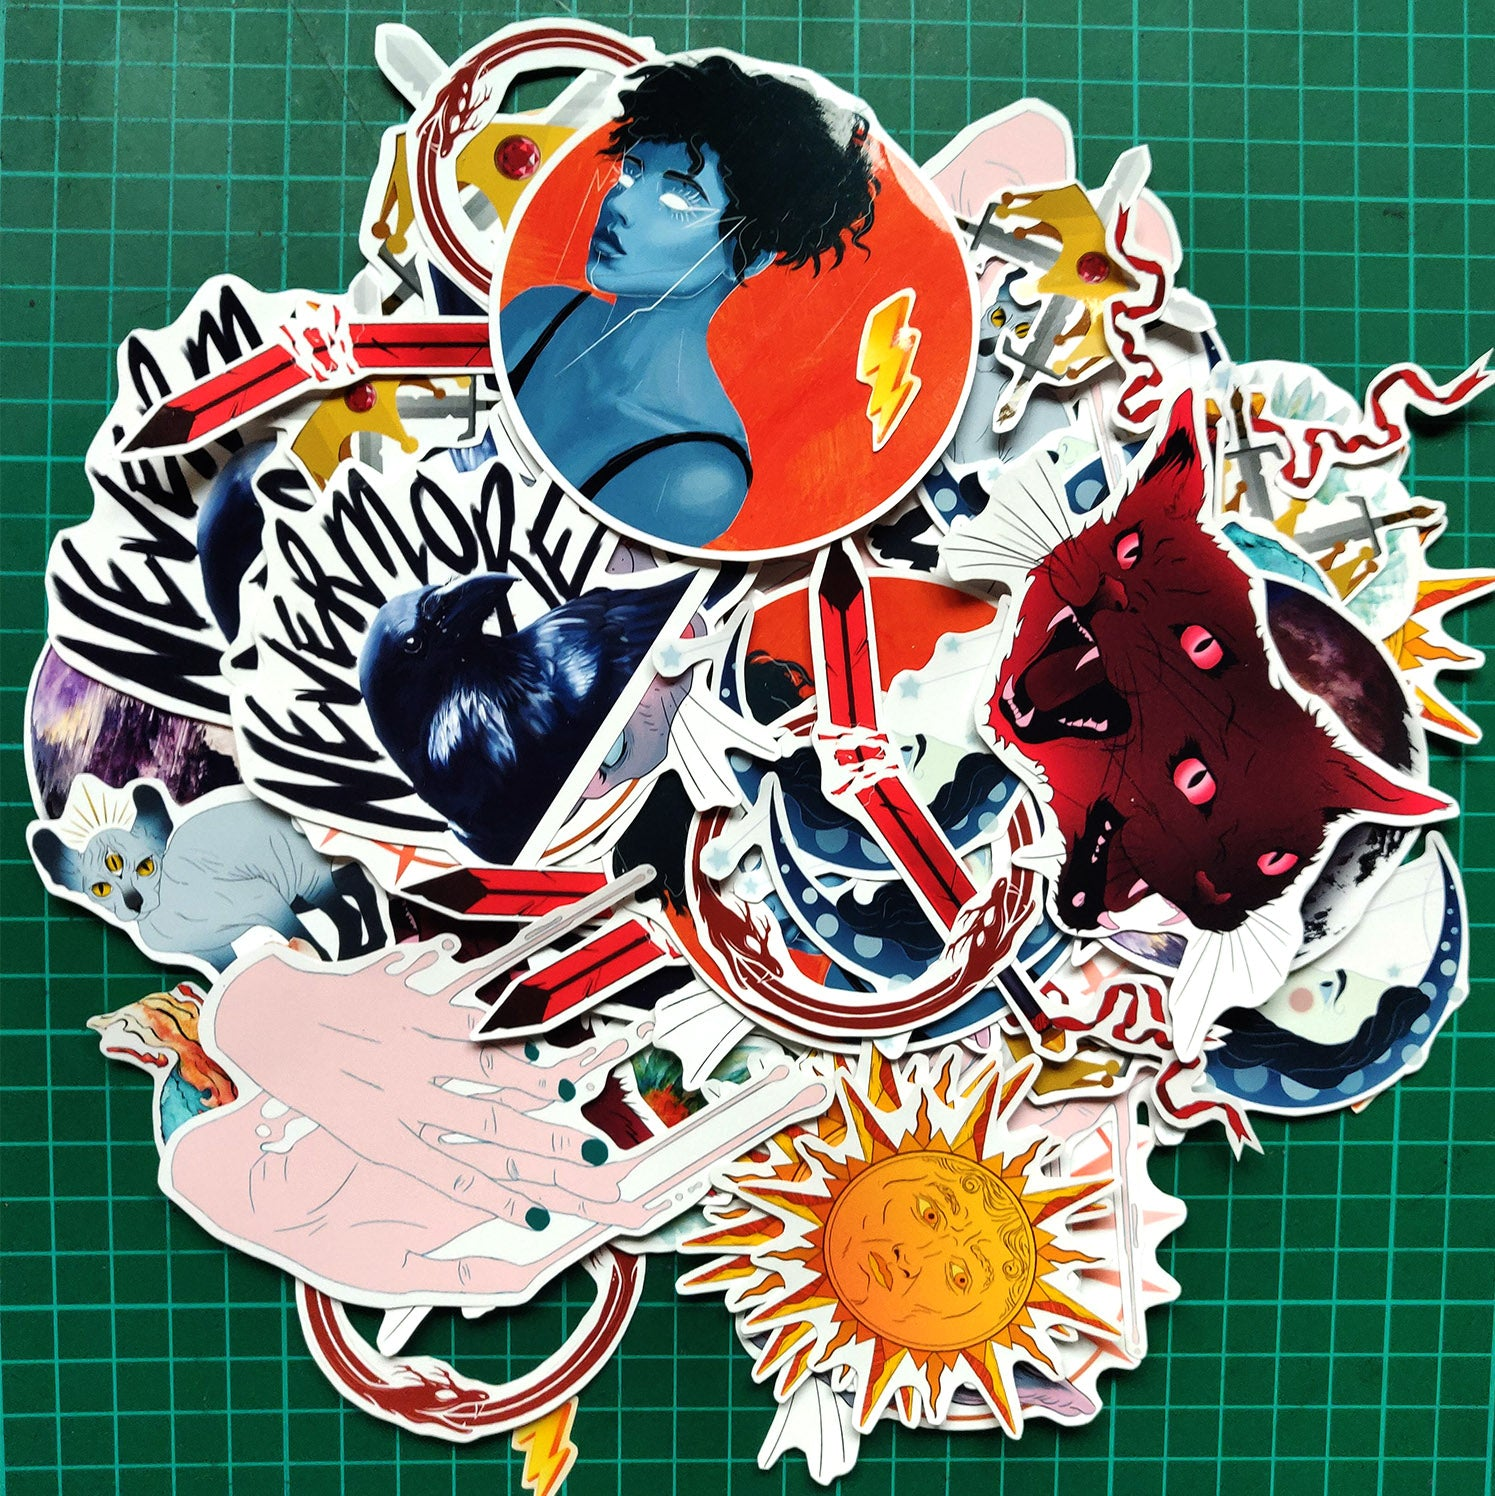 10 Glossy Vinyl Sticker Pack